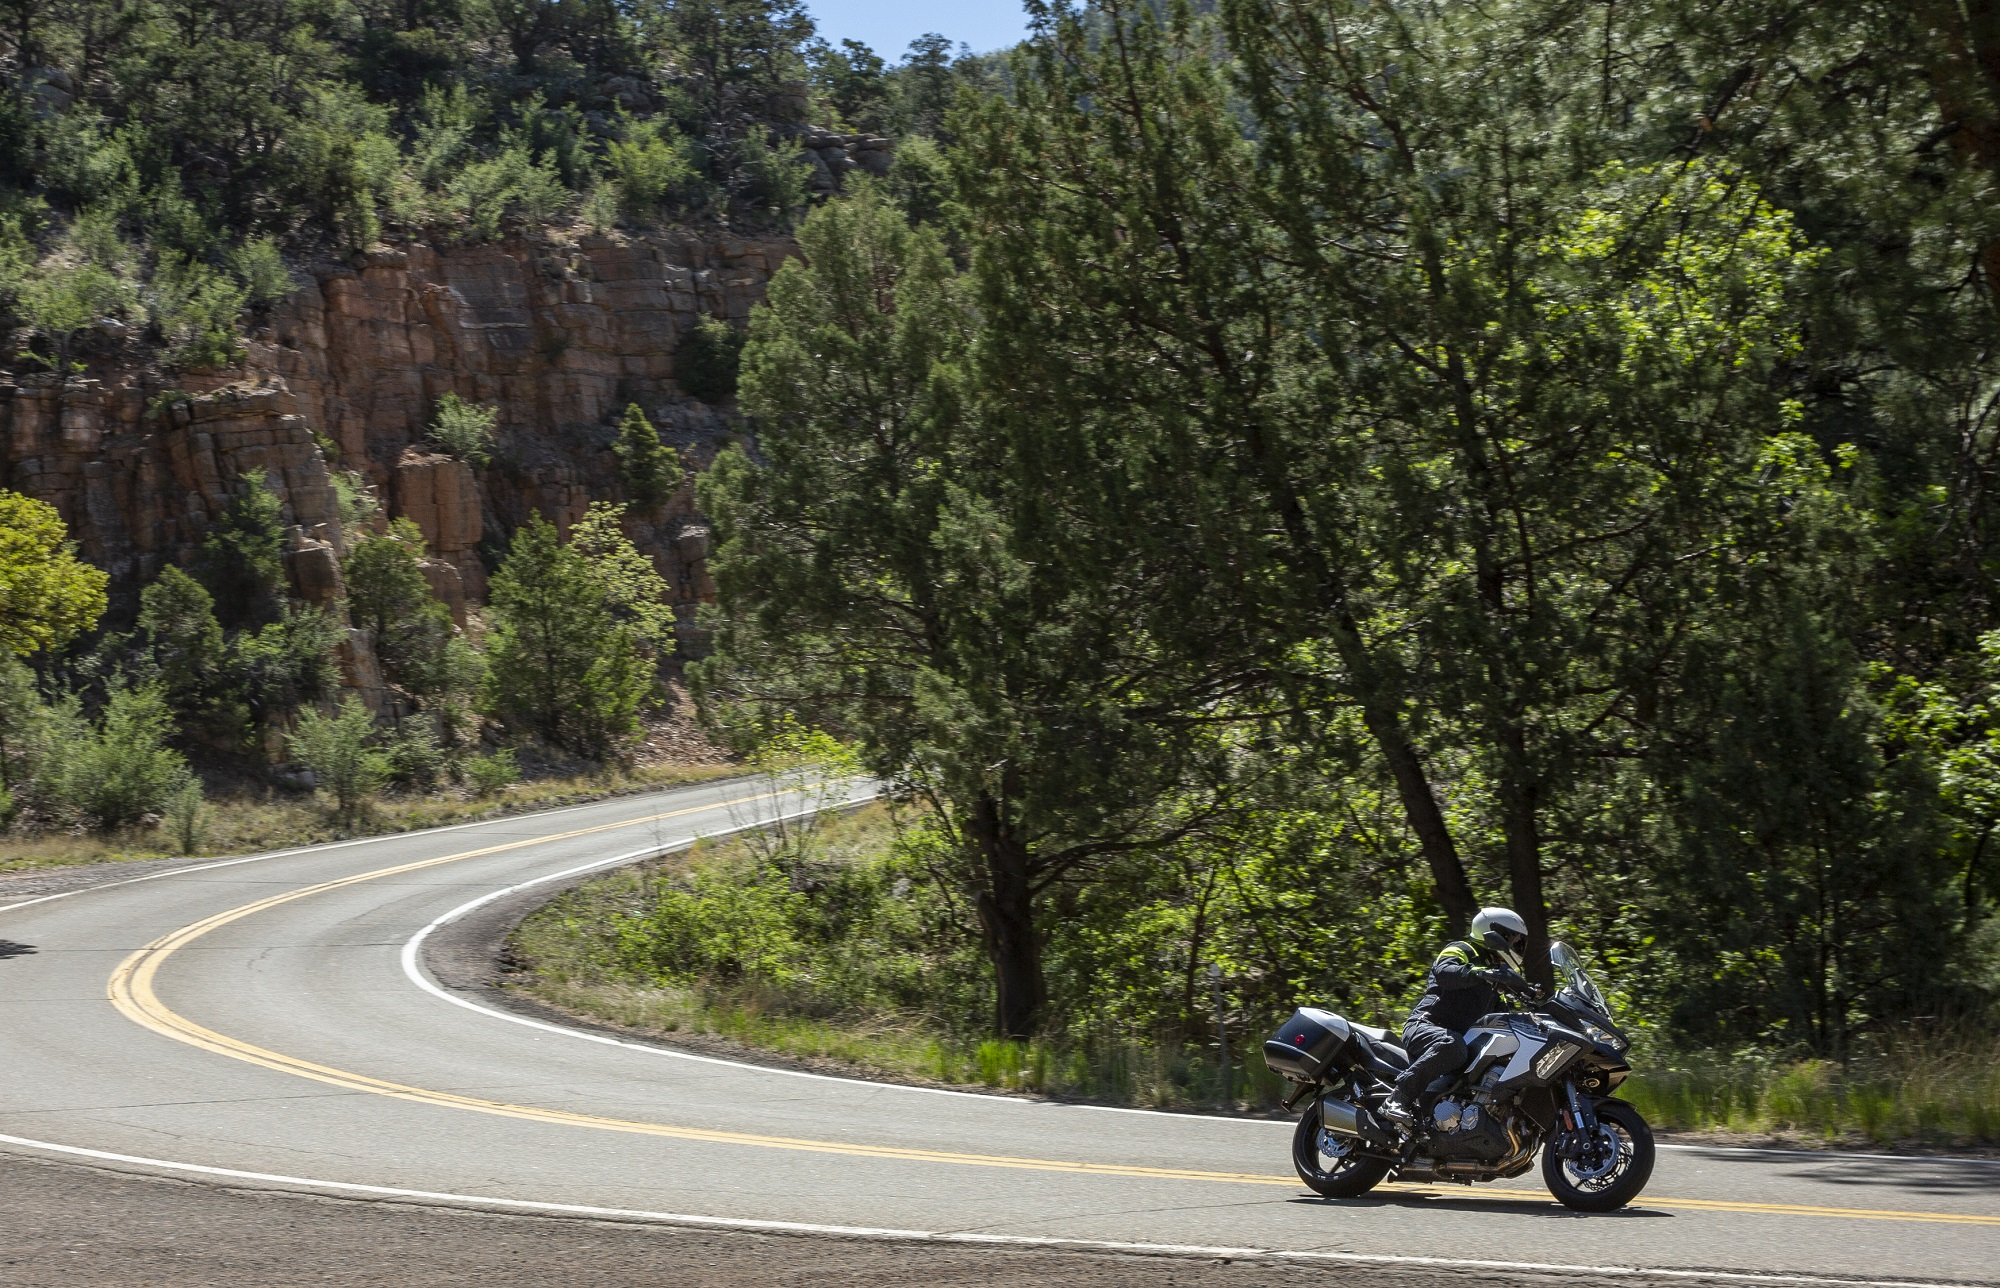 2019 Kawasaki Versys 1000 SE LT+ review – The Ride So Far